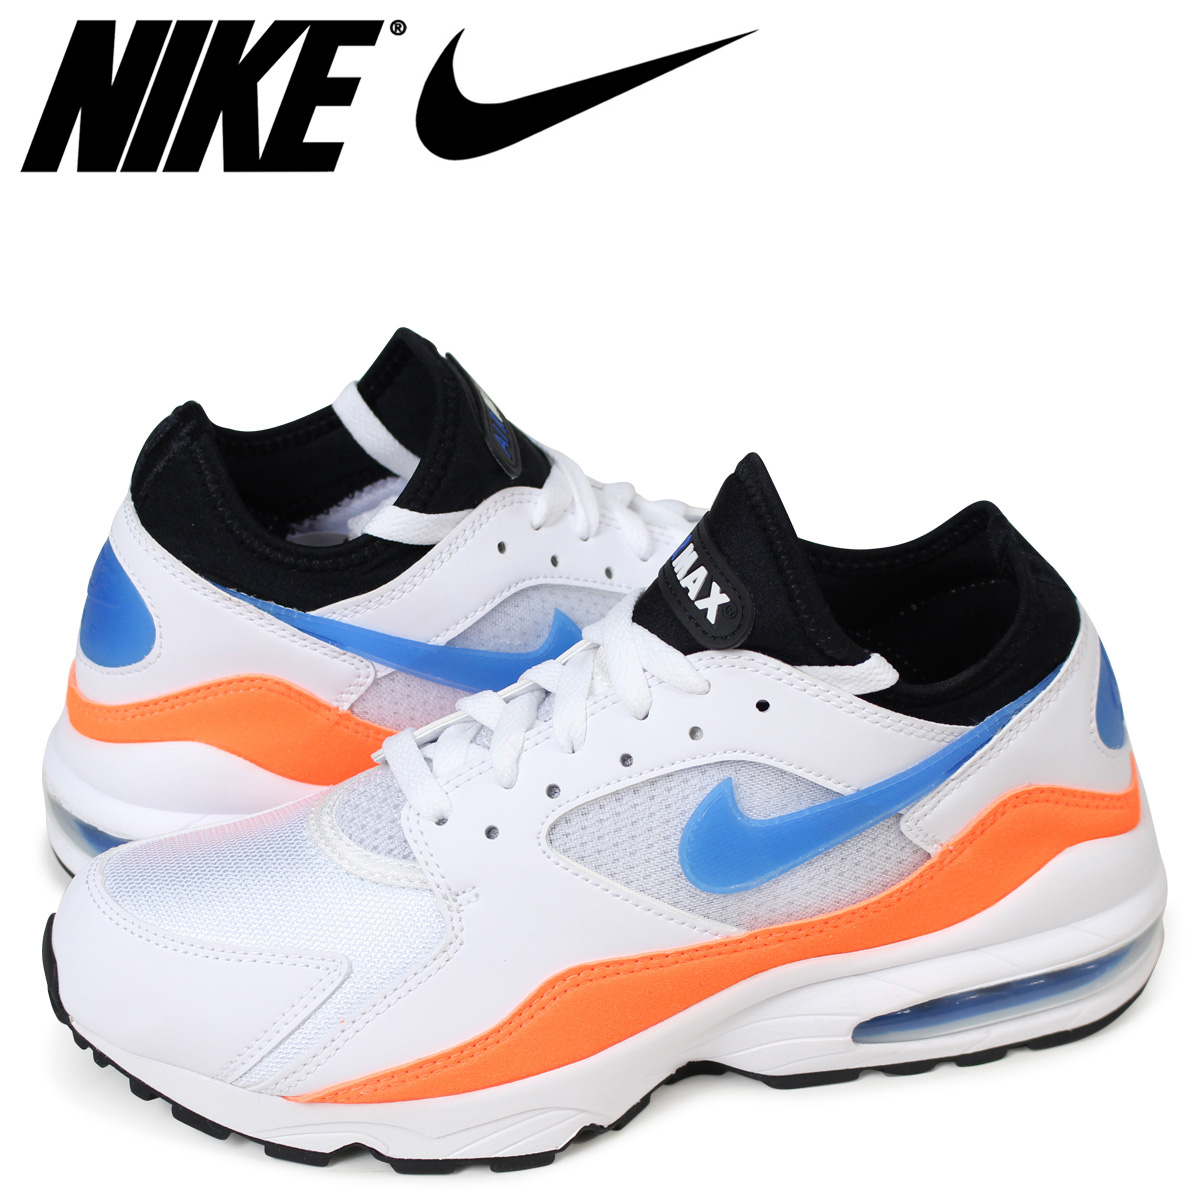 hot sale online b1efb 010ad Nike NIKE Air Max 93 sneakers men AIR MAX 93 306,551-104 white